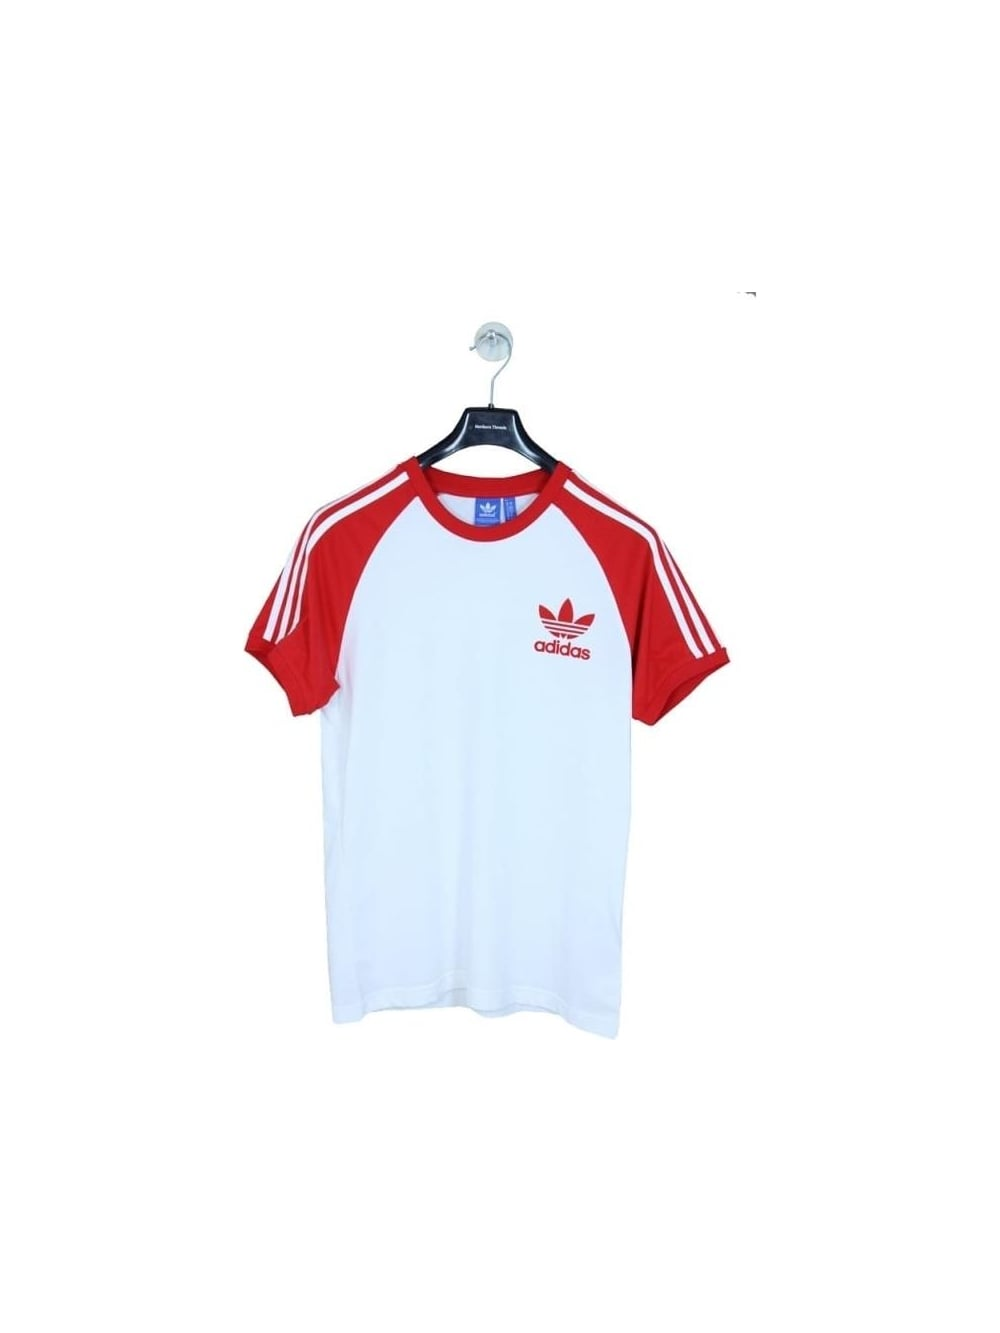 7346bf172613 adidas CLFN tee in White/Red - Northern Threads